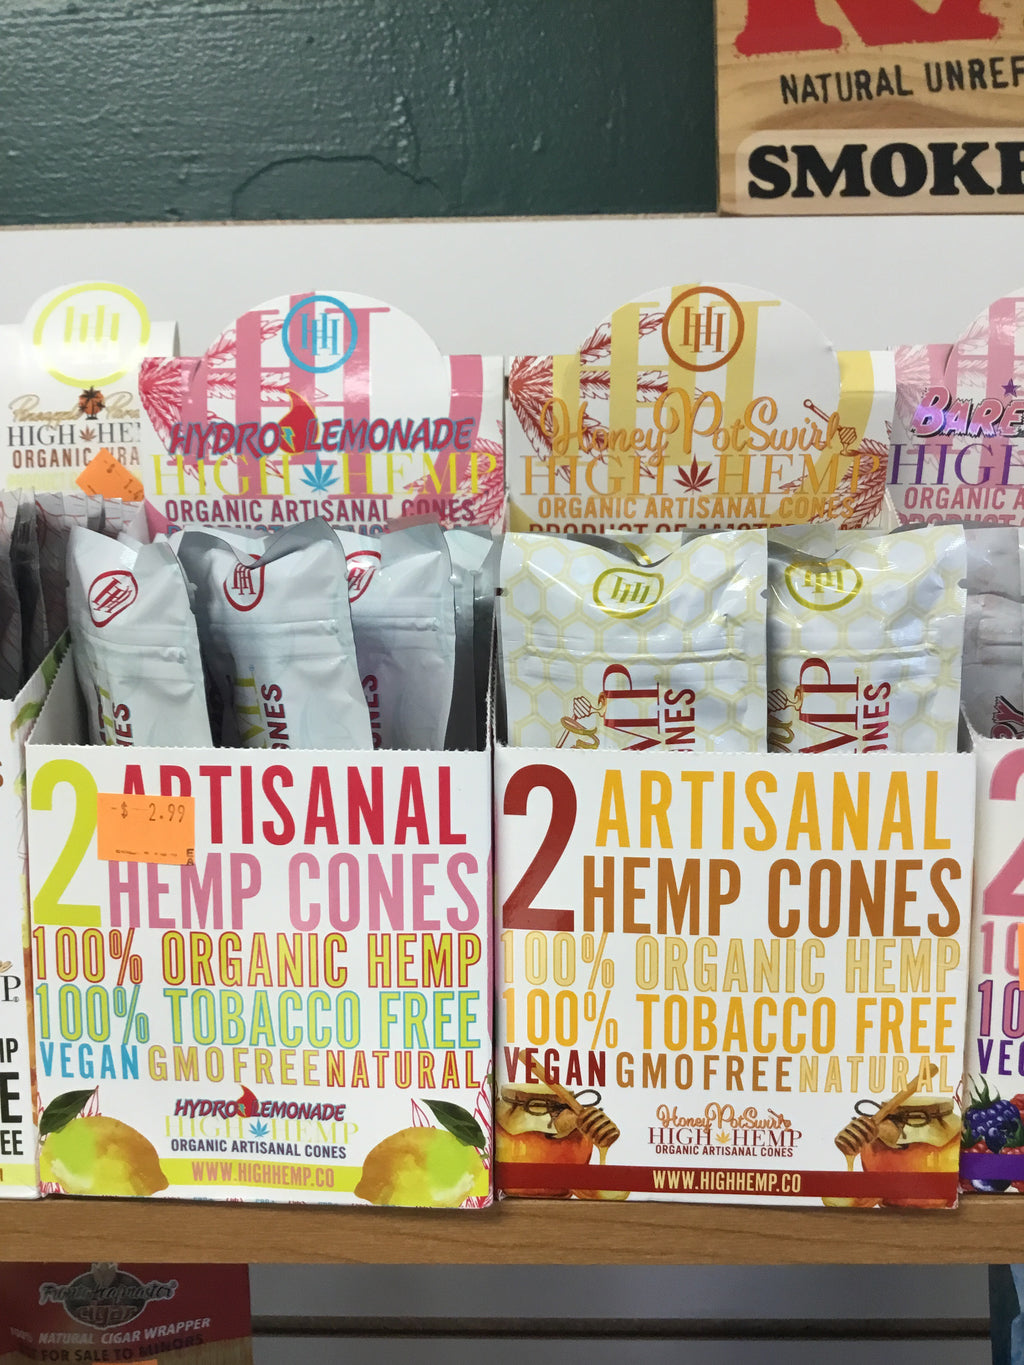 High Hemp Artisanal Cones